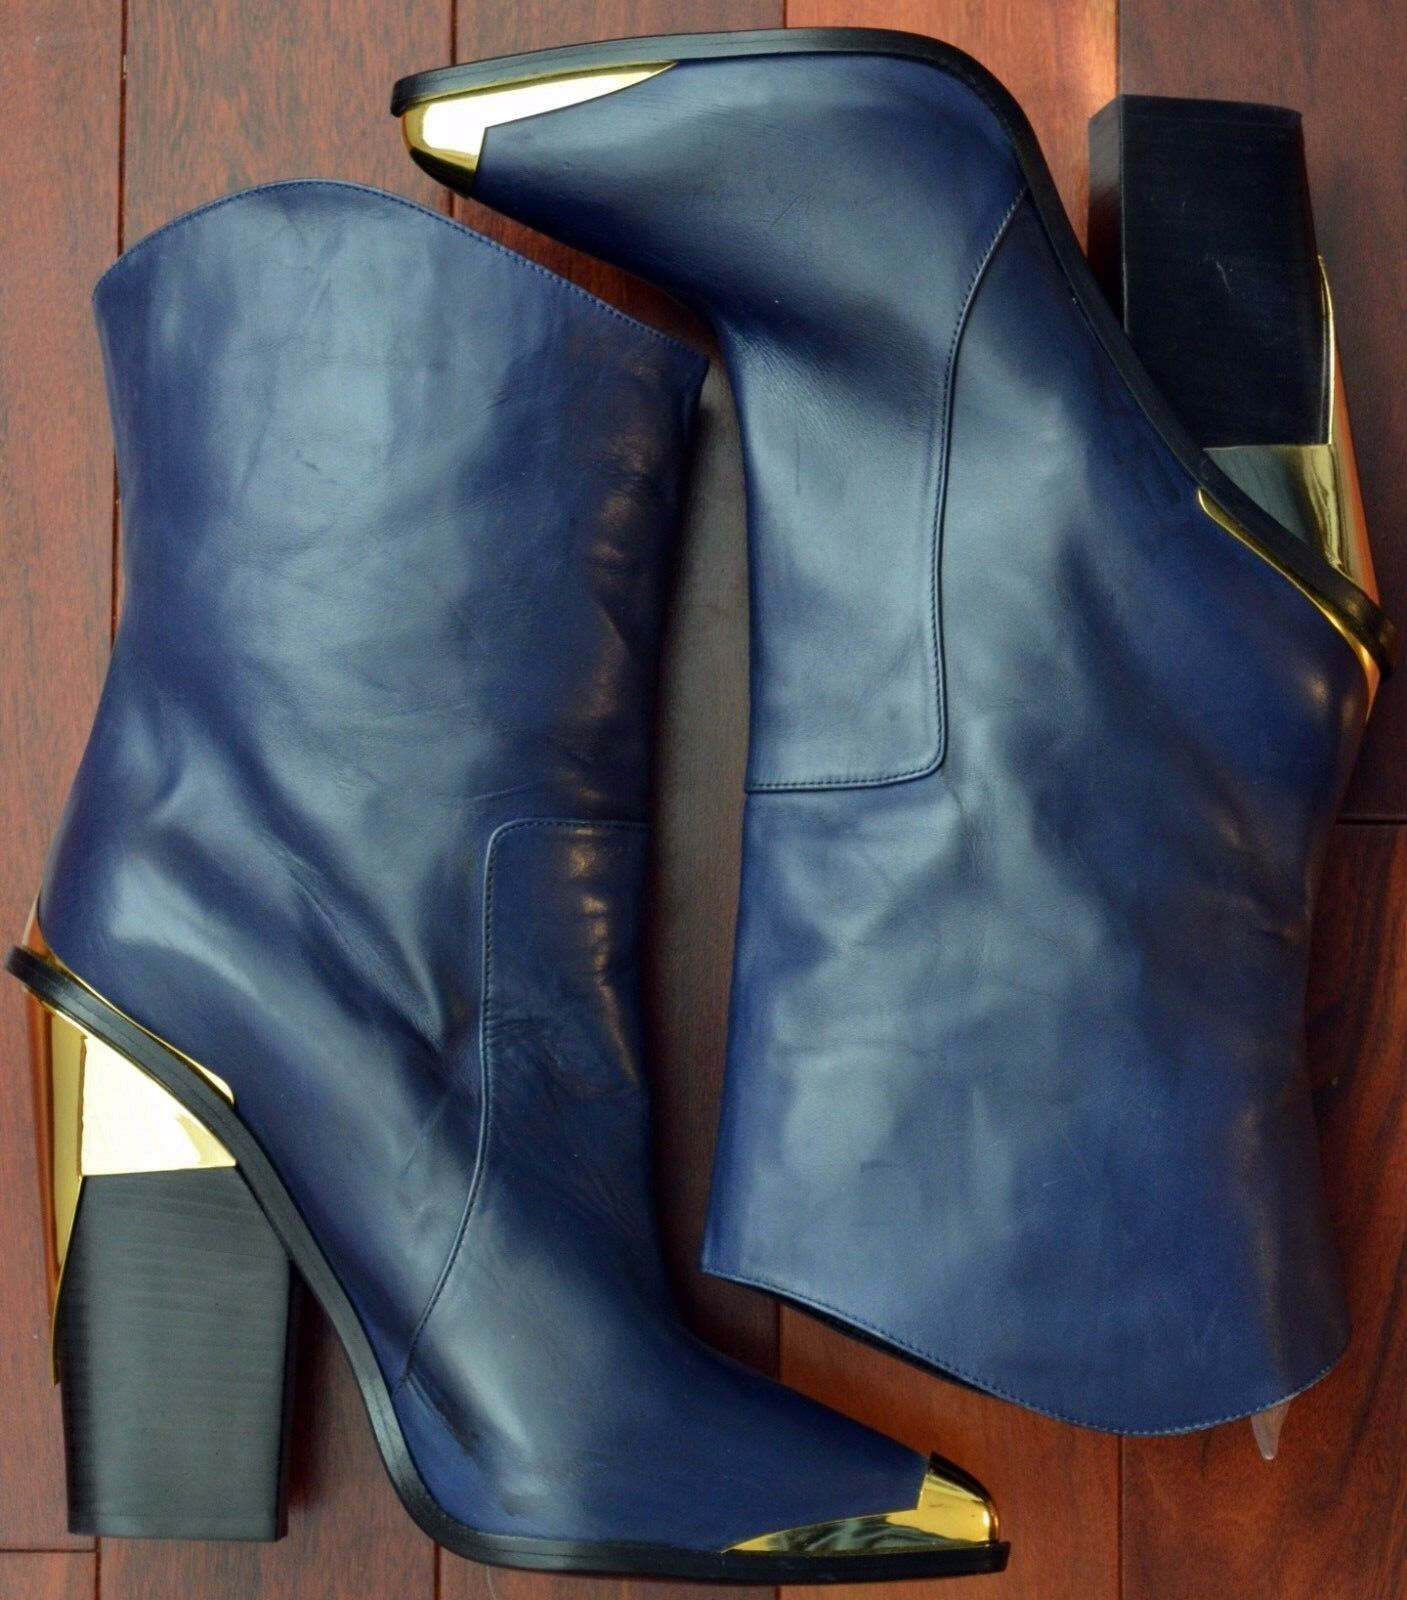 ULTRA-RARE! Versace Italy Dark Navy Blue Leather w/ Gold Metal Dress Boots 40.5